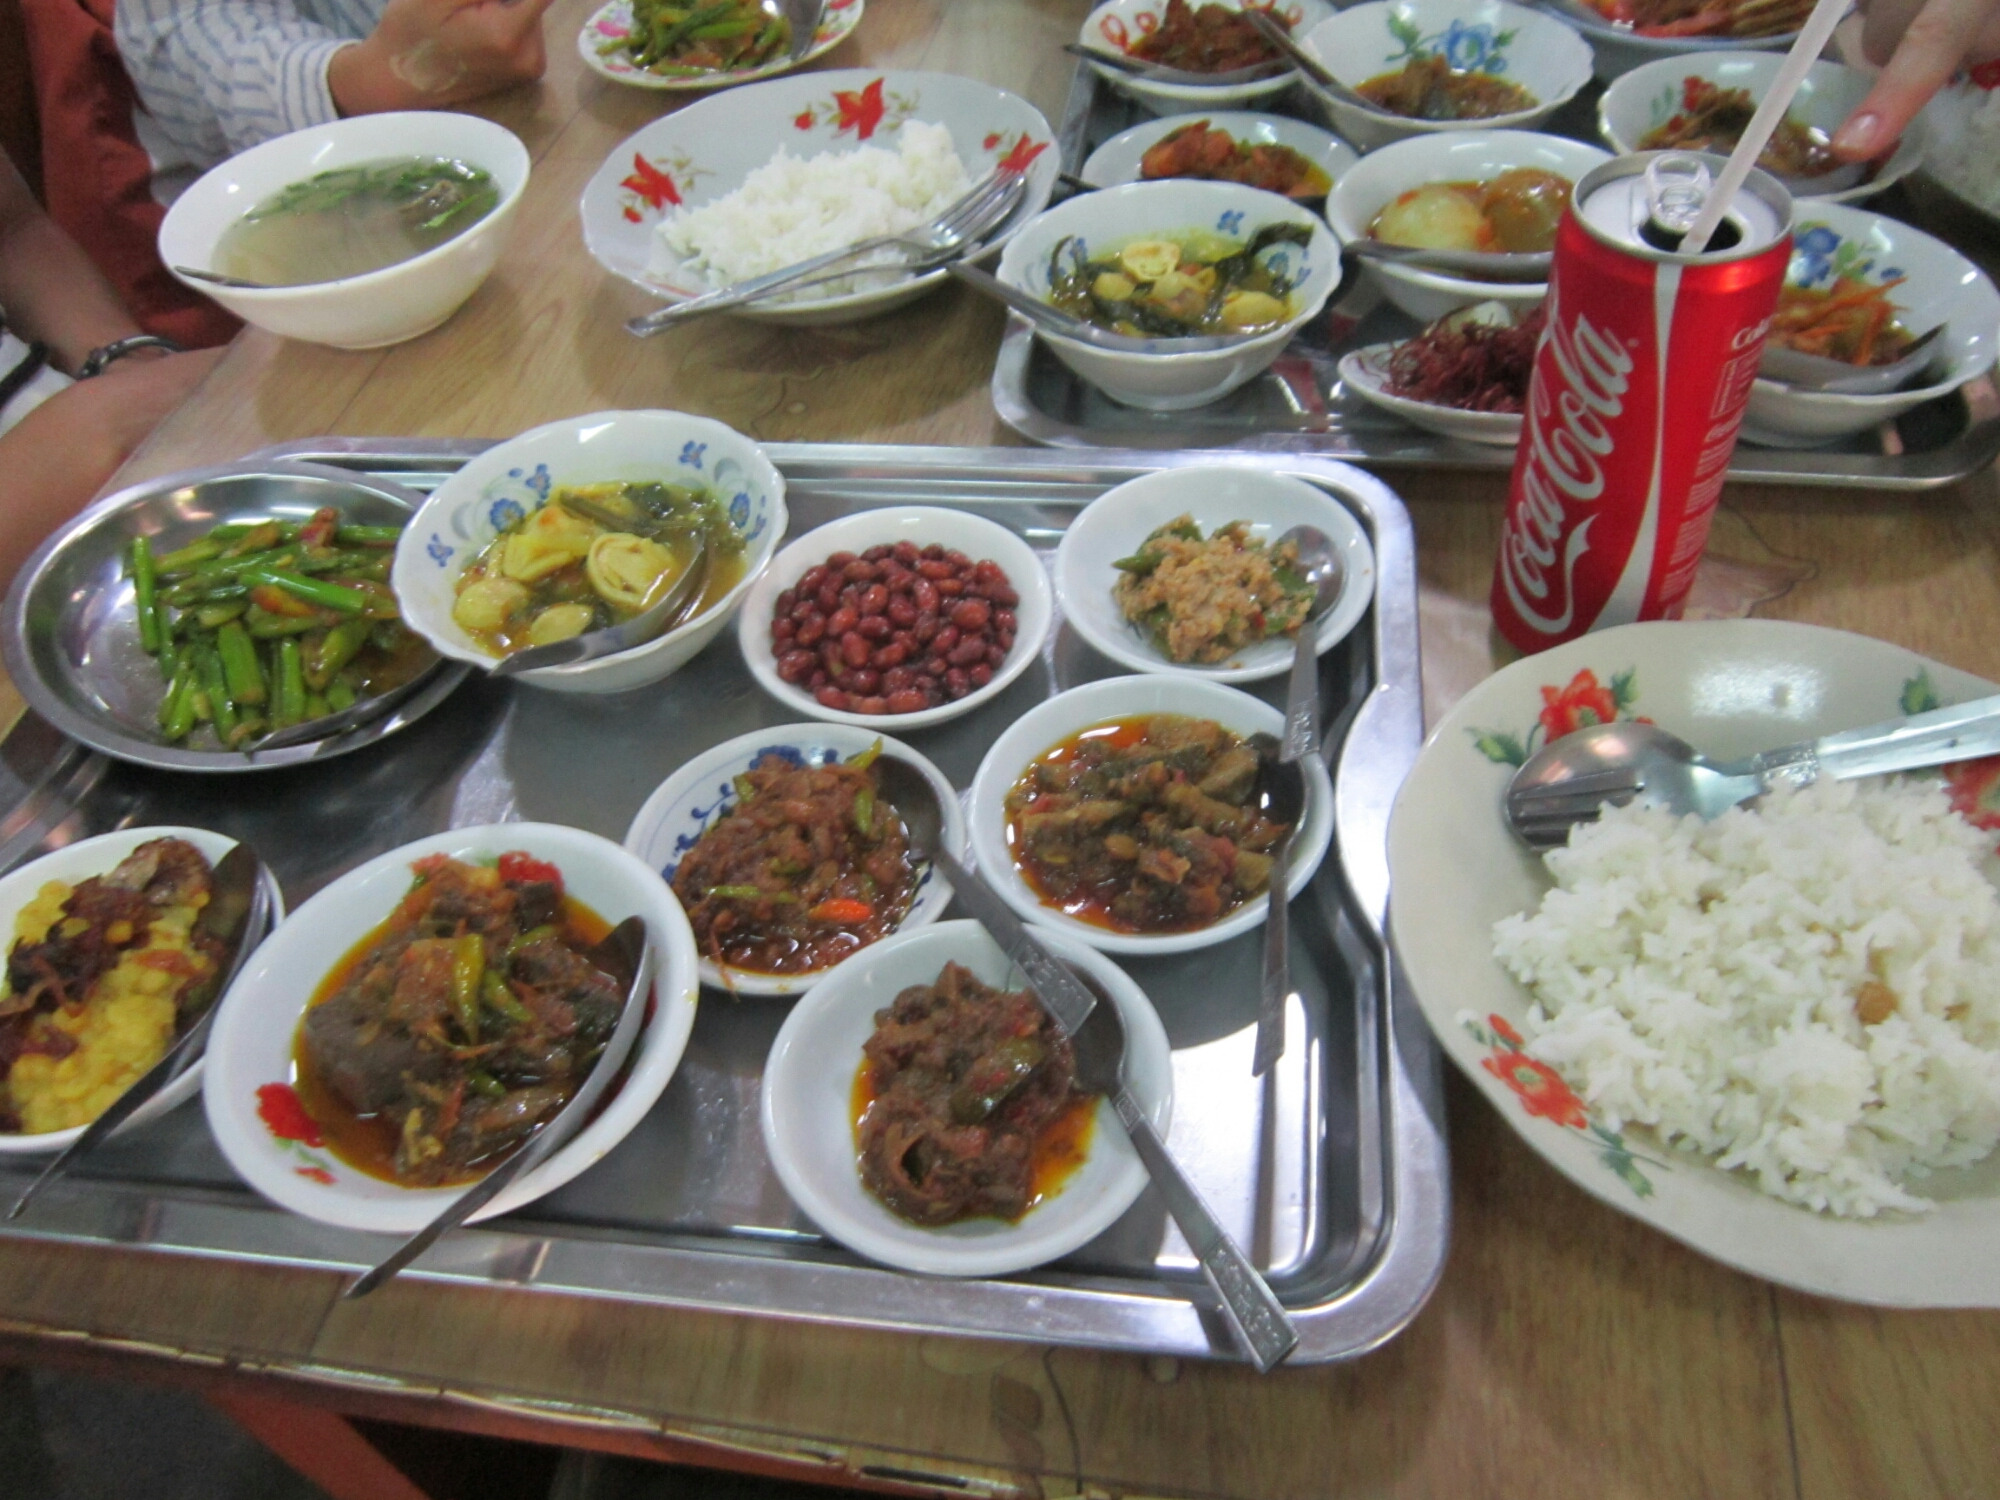 A traditional Burmese meal in Old Bagan